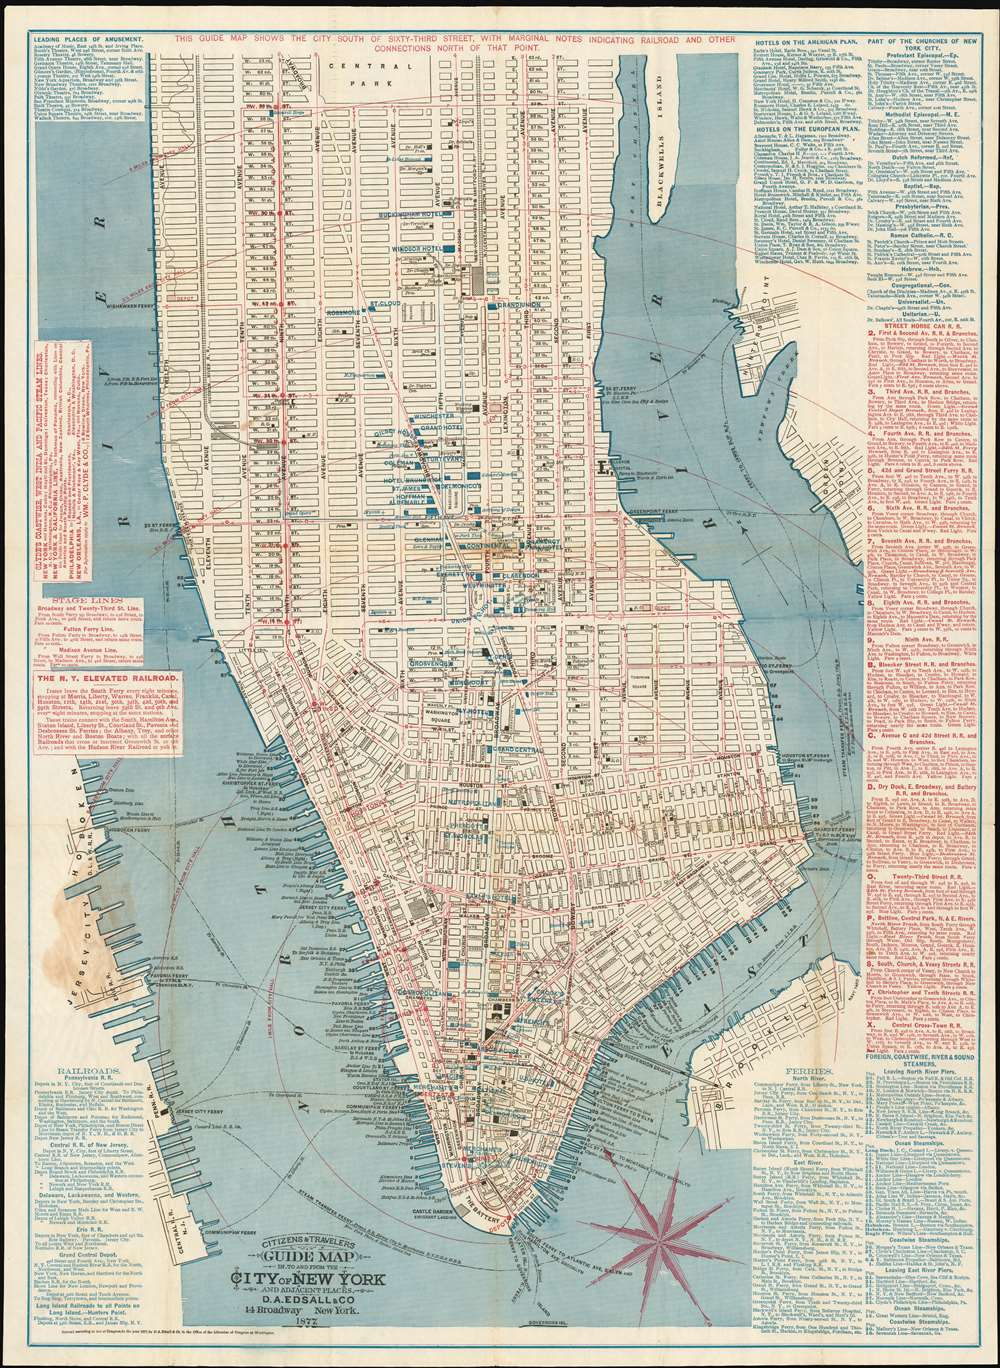 Citizens and Travelers Guide Map in, to and from the City of New York and Adjacent Places. - Main View